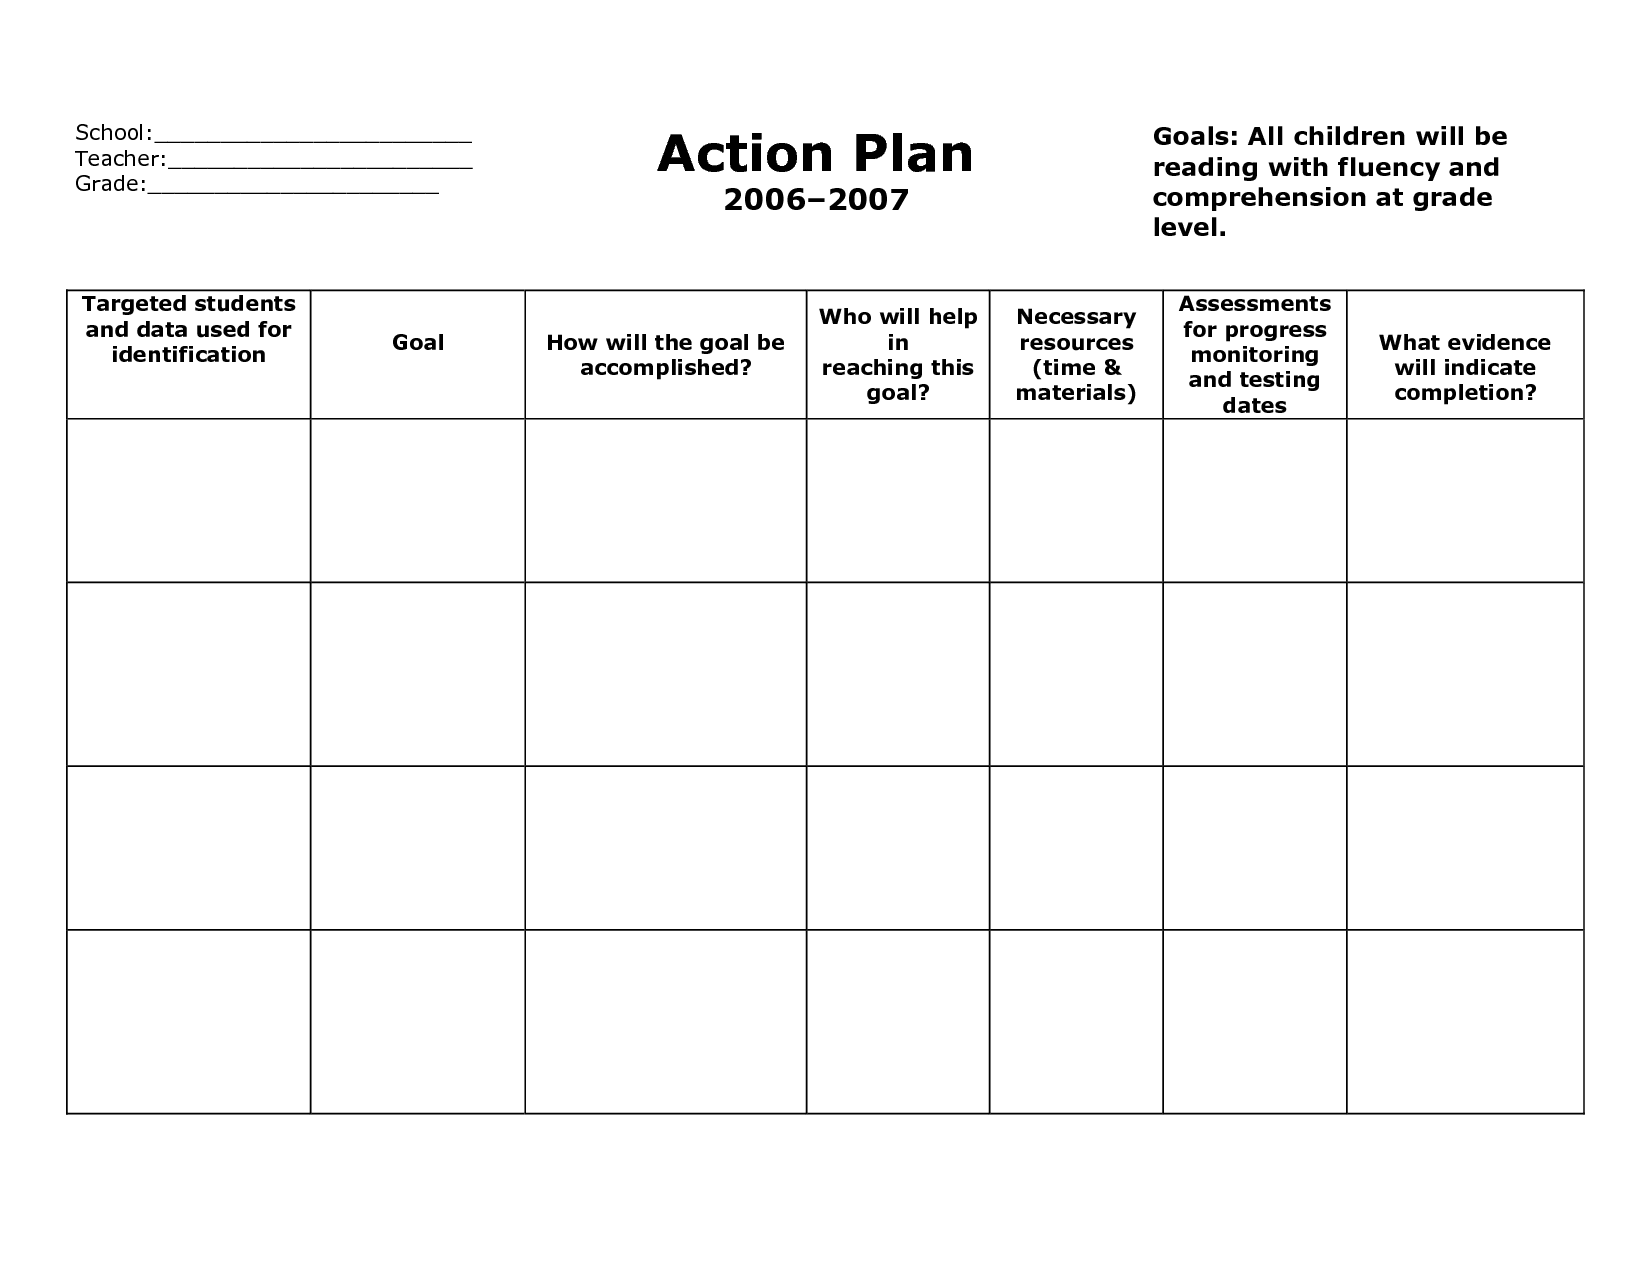 Action Plan Template Action Plan Format V5fclyv5 With